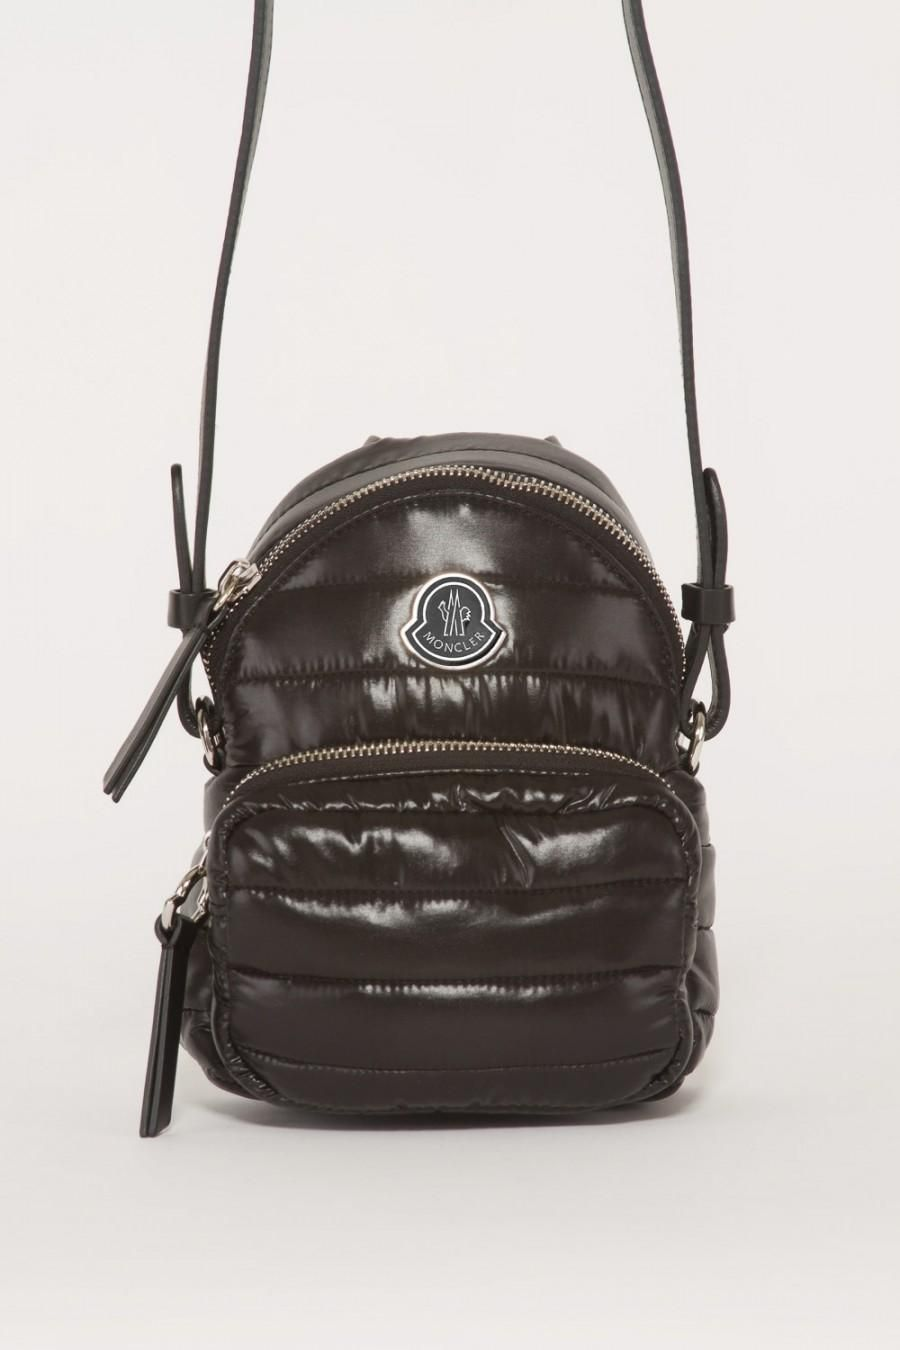 ddce99f40 MONCLER Kilia Small Crossbody Bag. #moncler #bags #shoulder bags ...